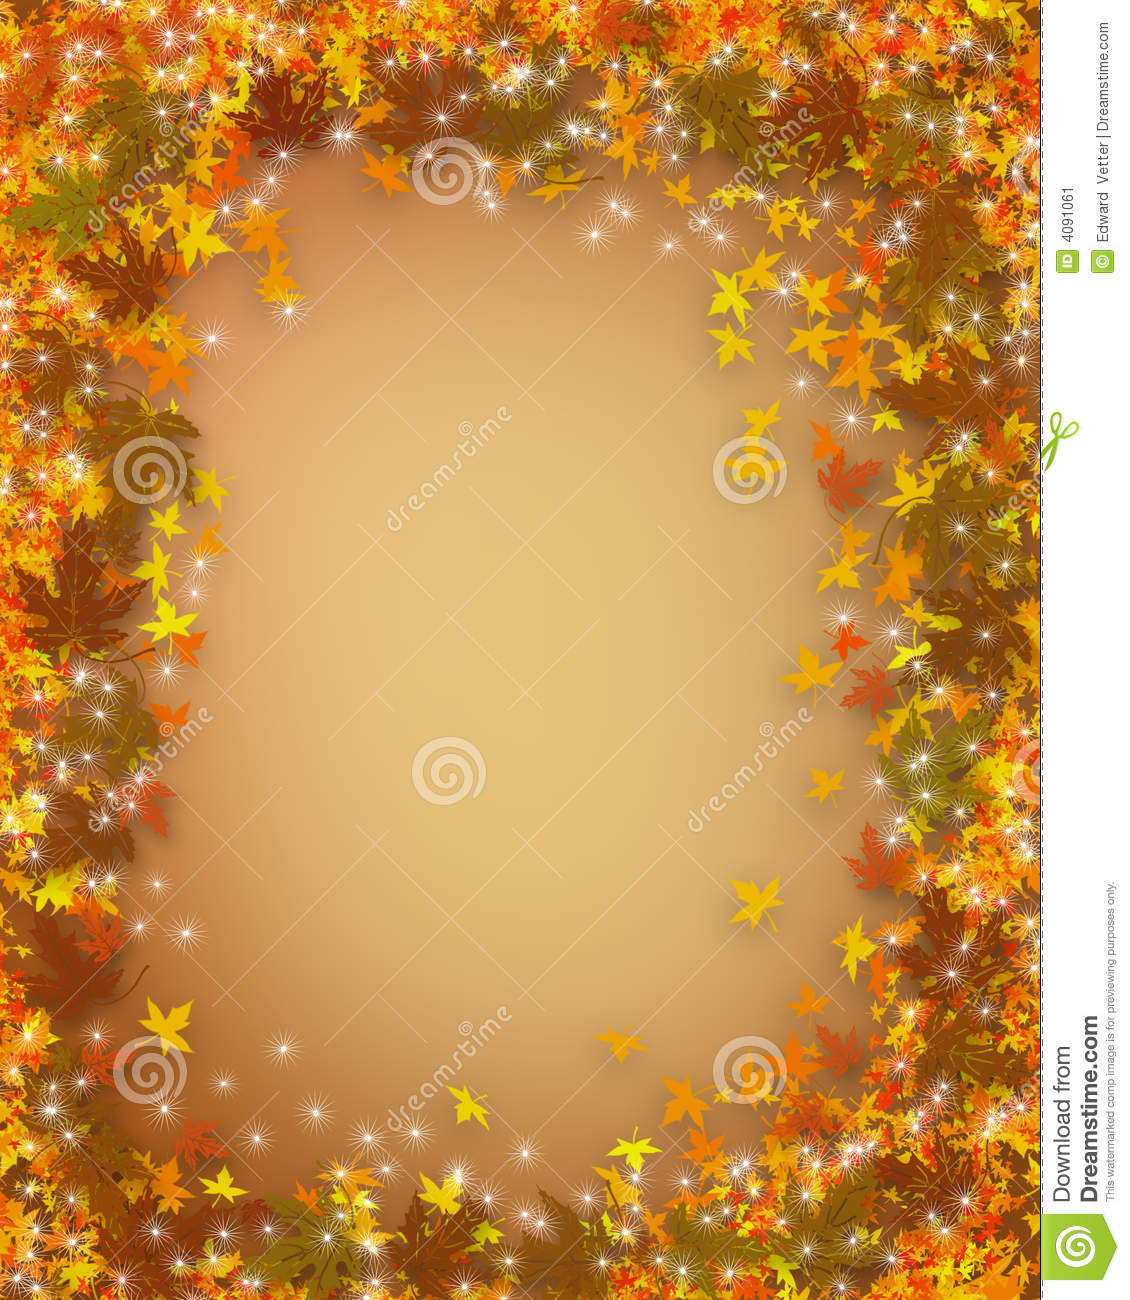 Thanksgiving Fall Autumn Border Stock Illustration